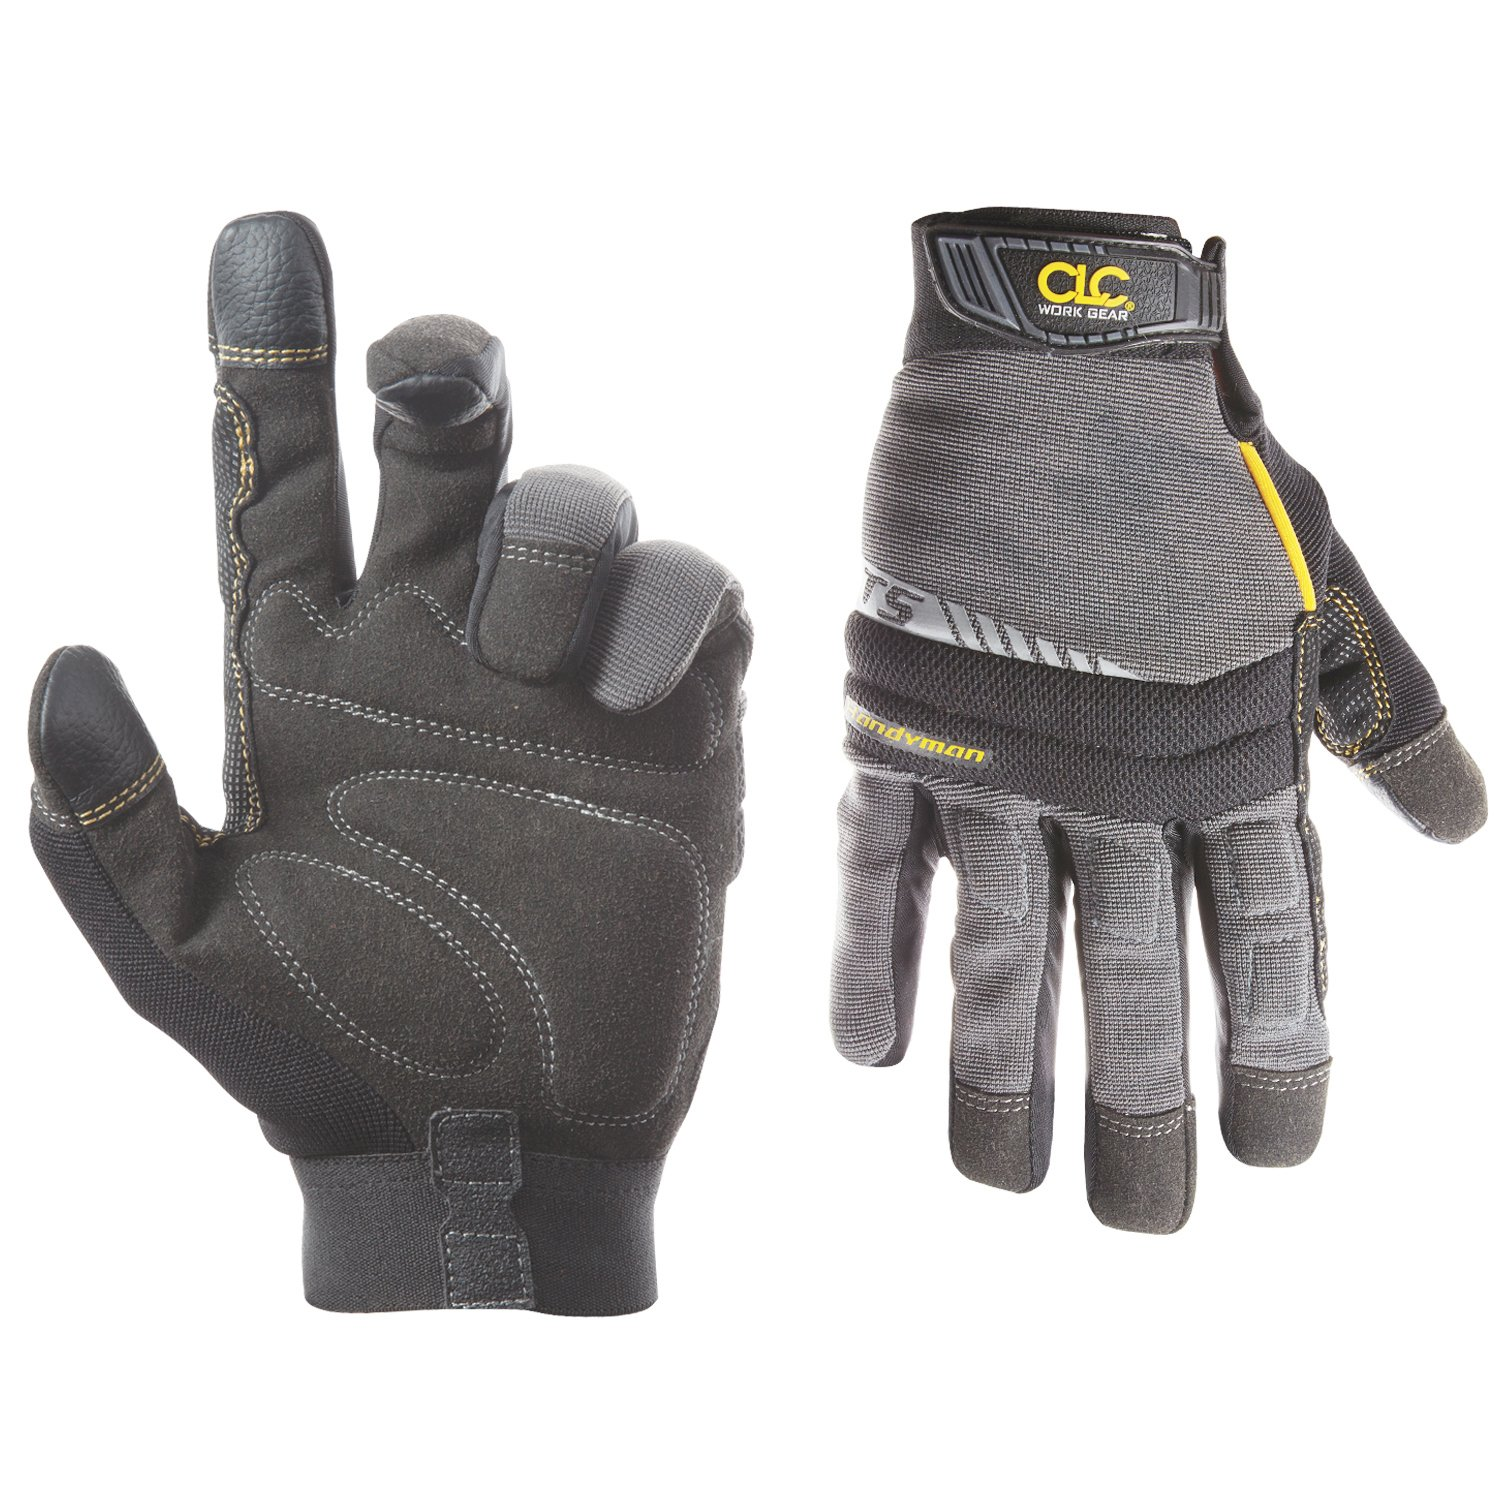 CLC Custom Leathercraft 125L Handyman Flex Grip Work Gloves, Shrink Resistant, Improved Dexterity, Tough, Stretchable, Excellent Grip by Custom Leathercraft